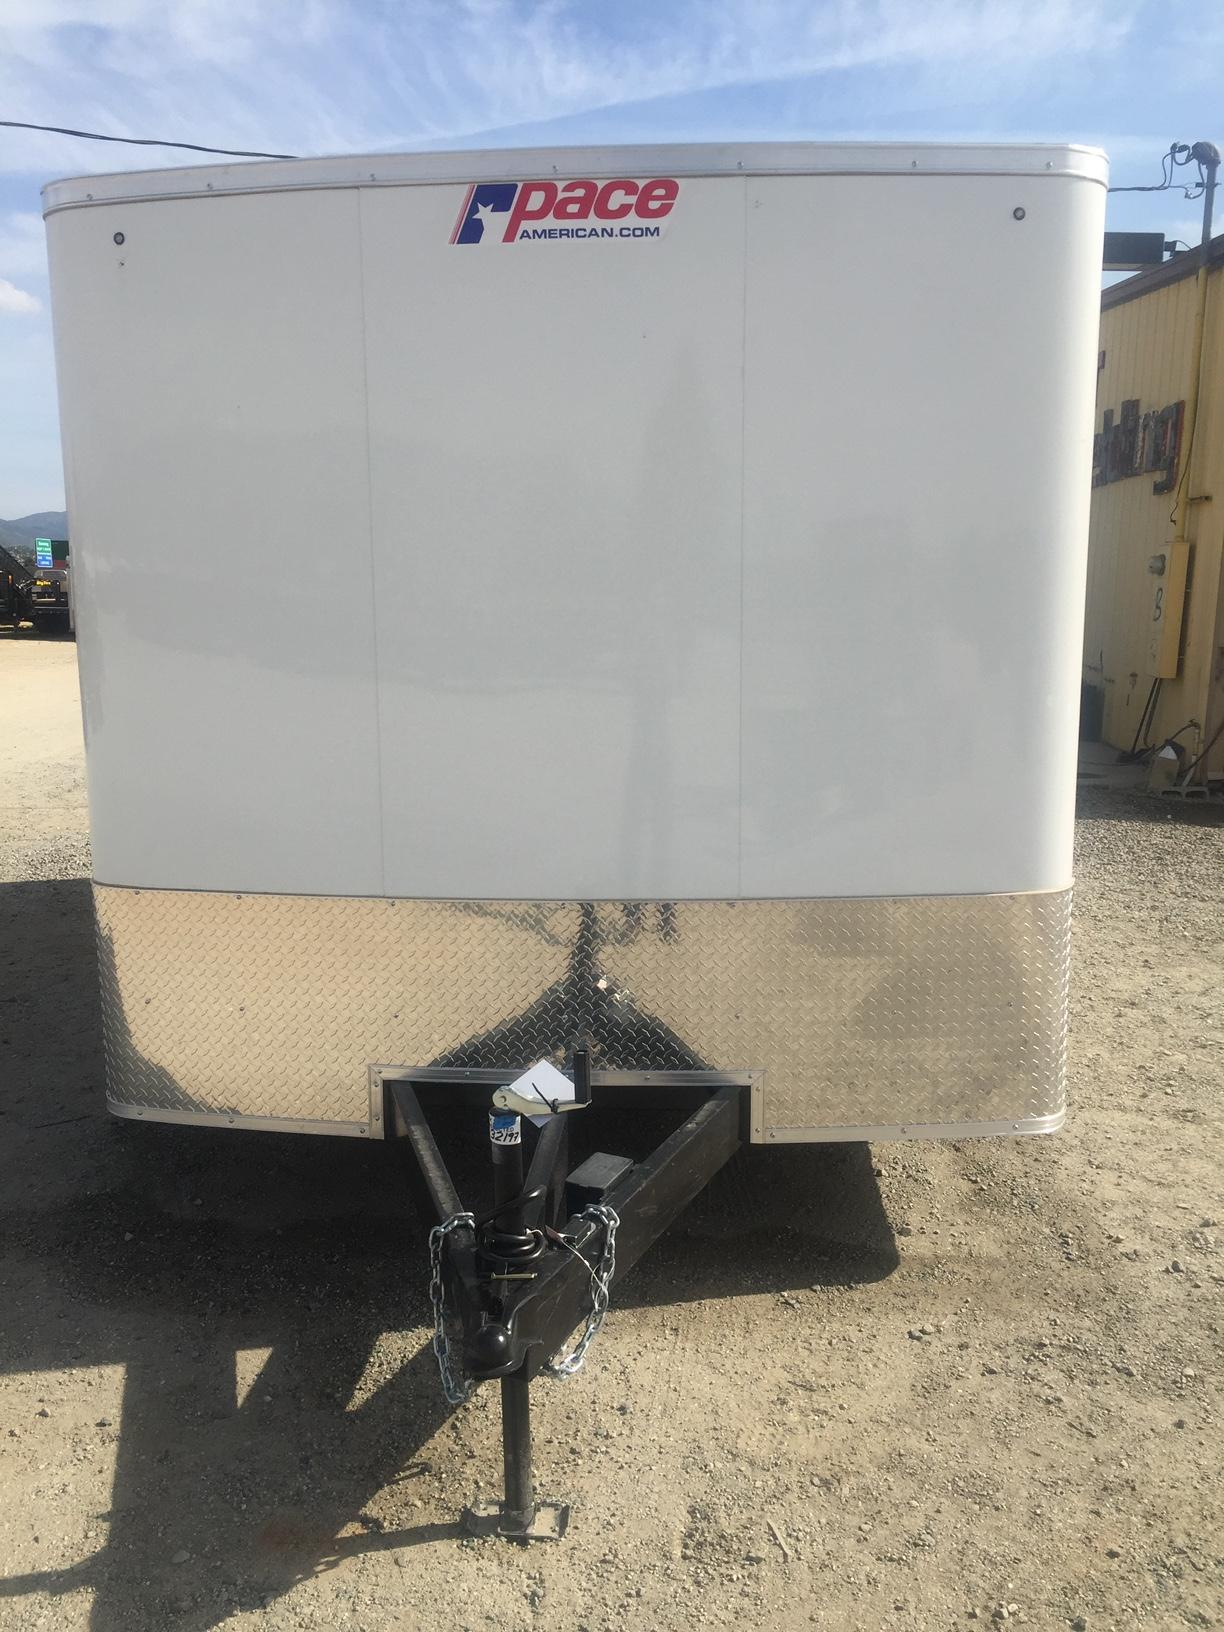 Cargo Trailers for Rent | Enclosed Trailer Rental | Cargo Trailer Rental